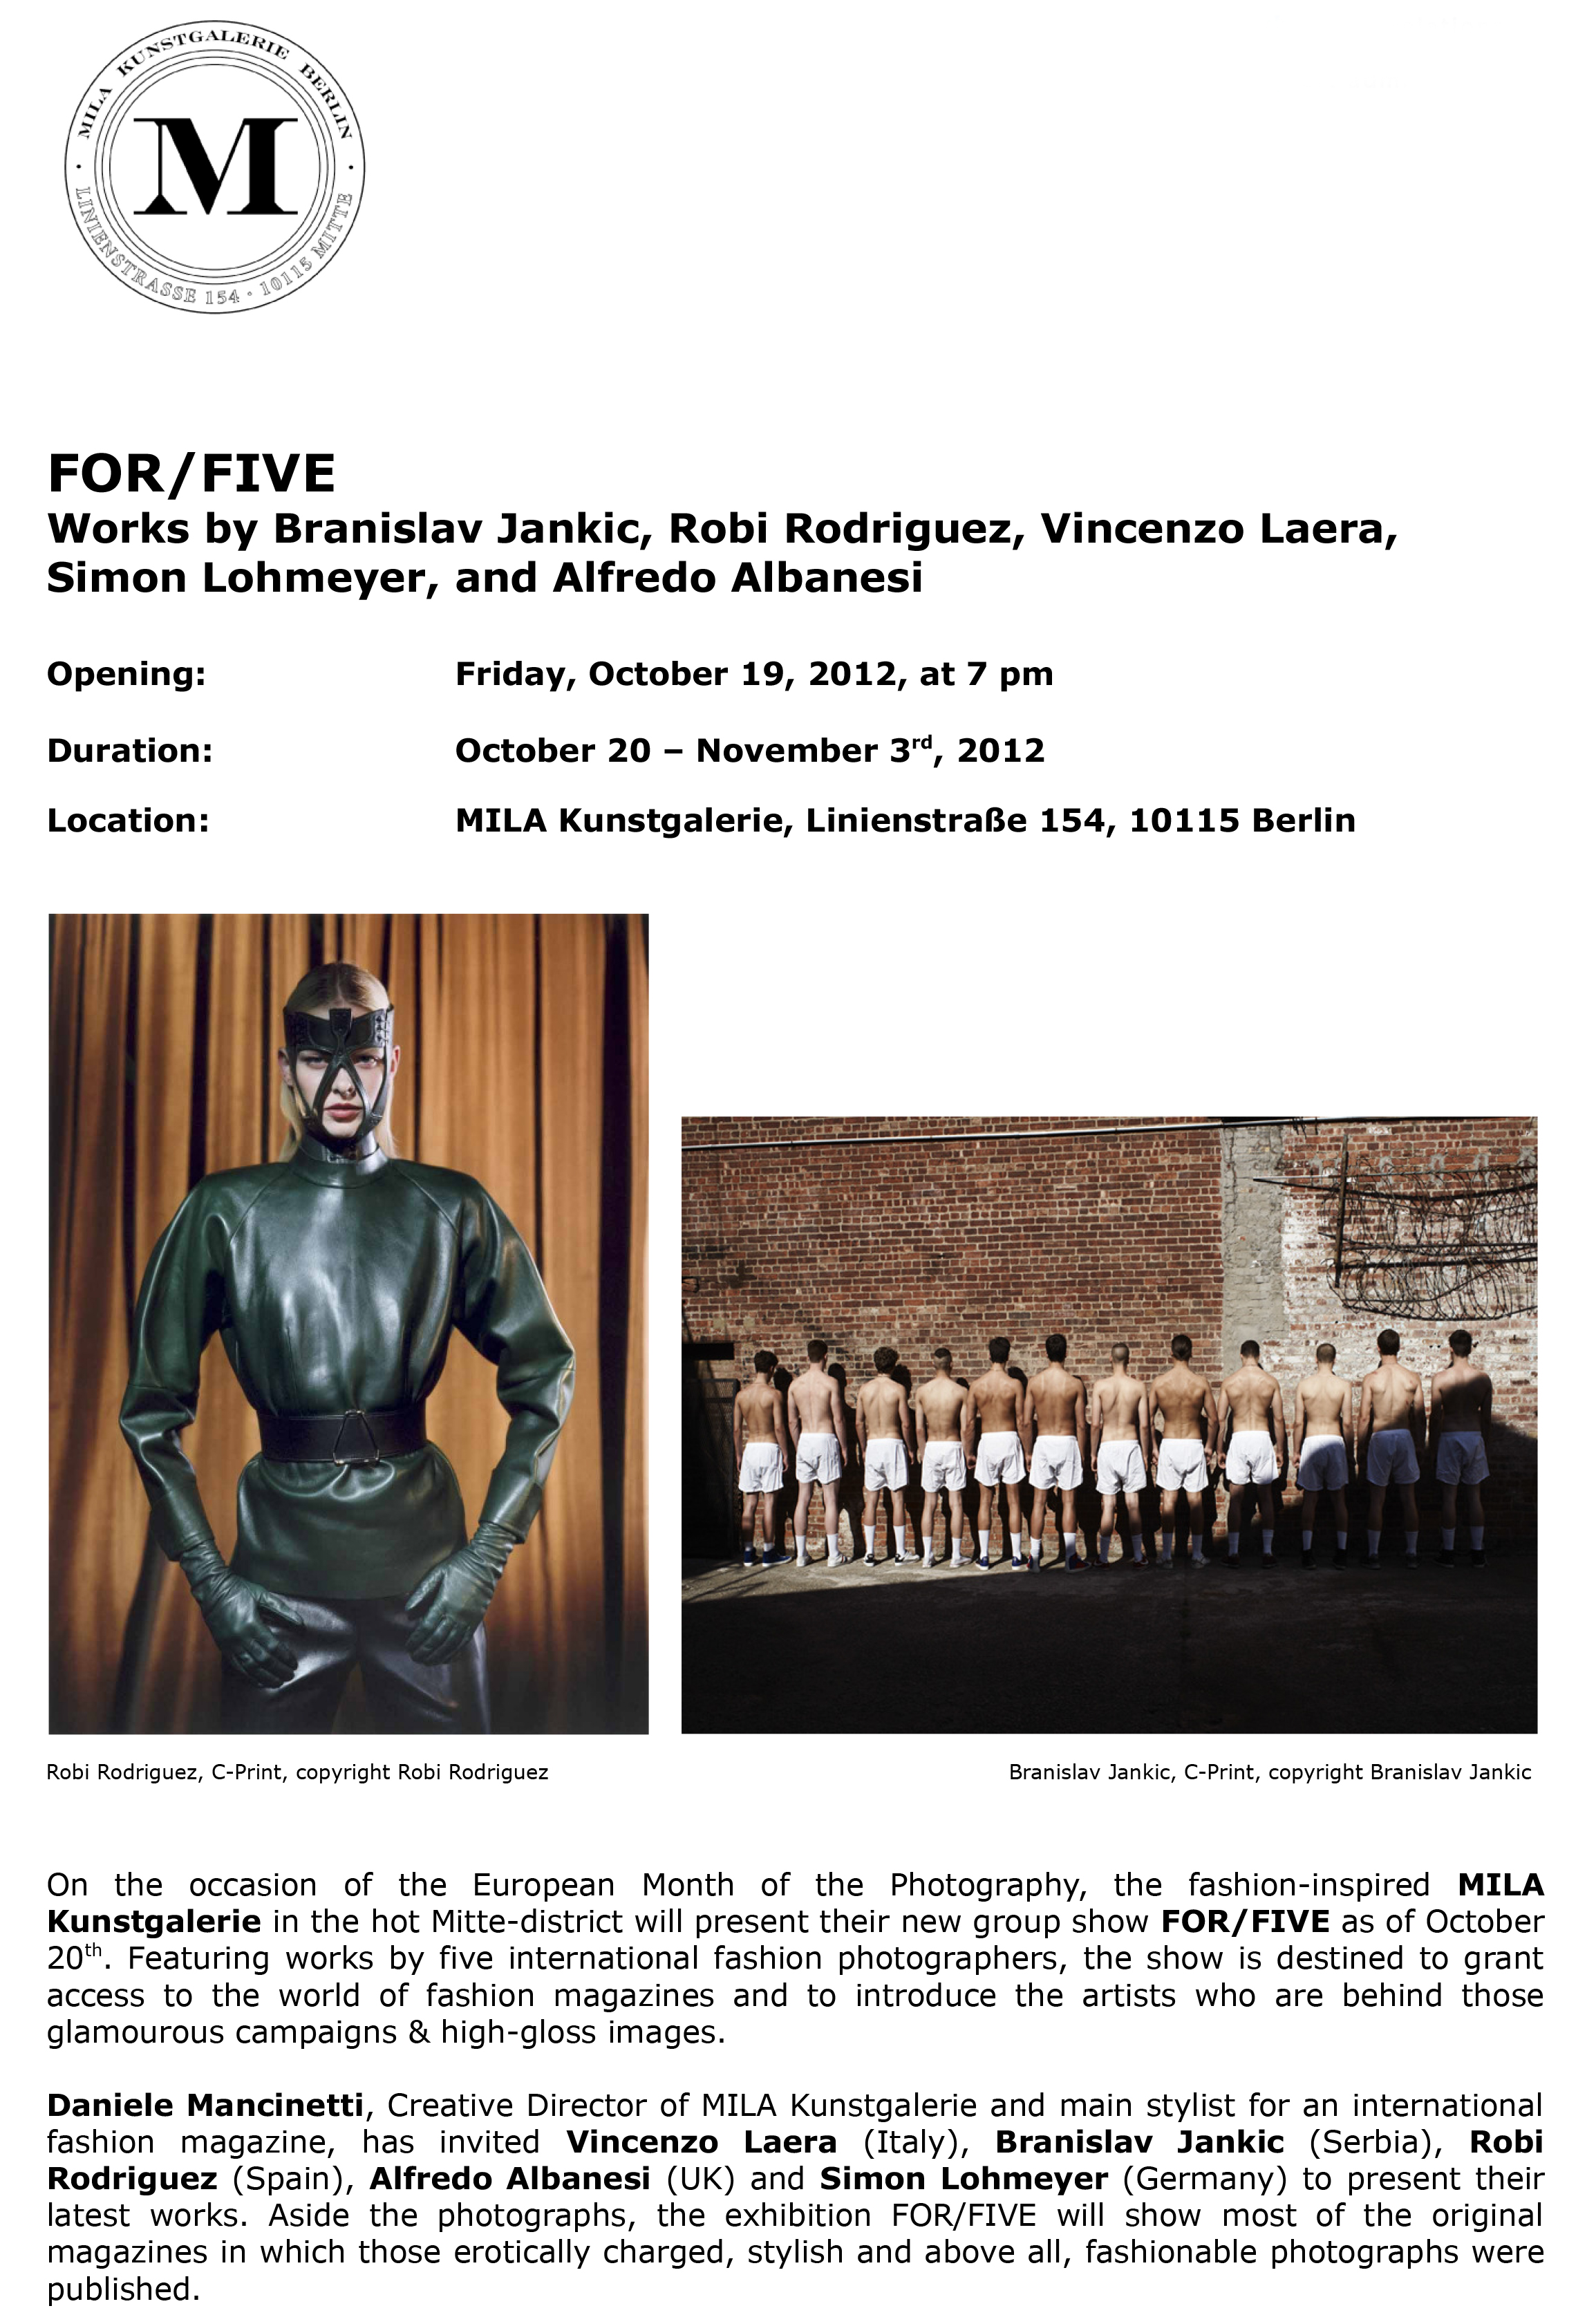 Press release_for five_MILA Kunstgalerie_nadine dinter - public